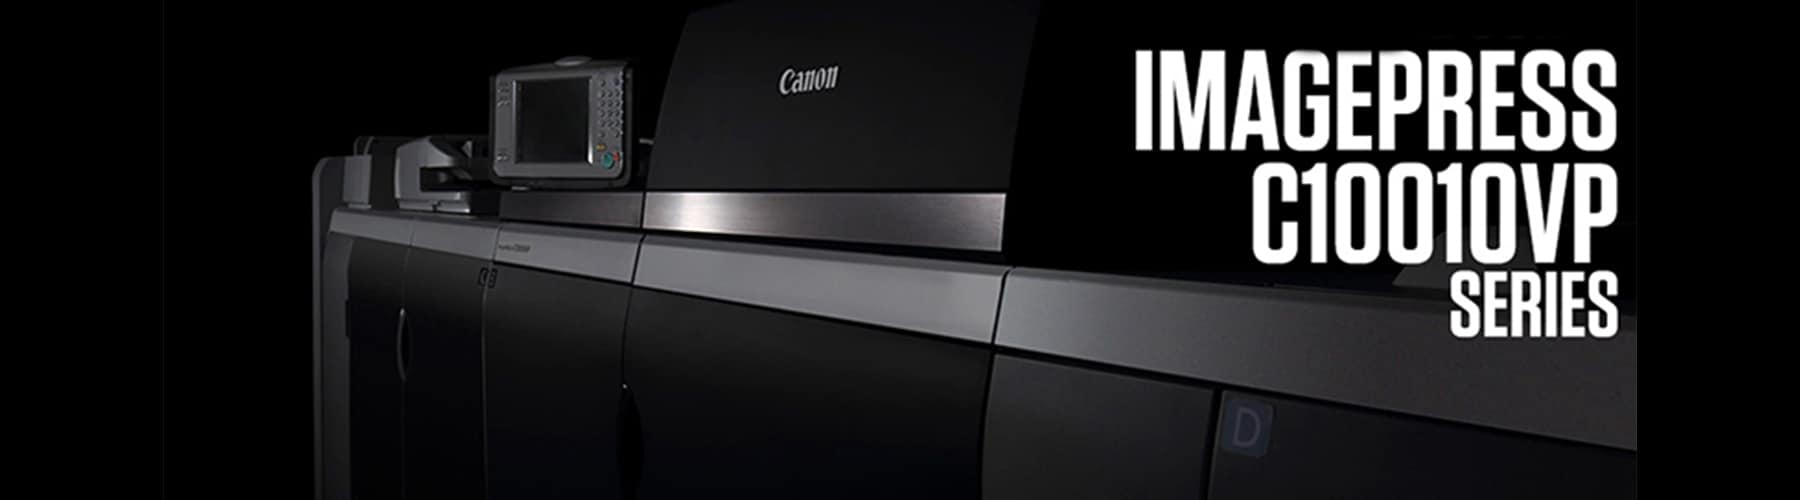 You are currently viewing Il Production Printing si chiama imagePRESS C10010VP